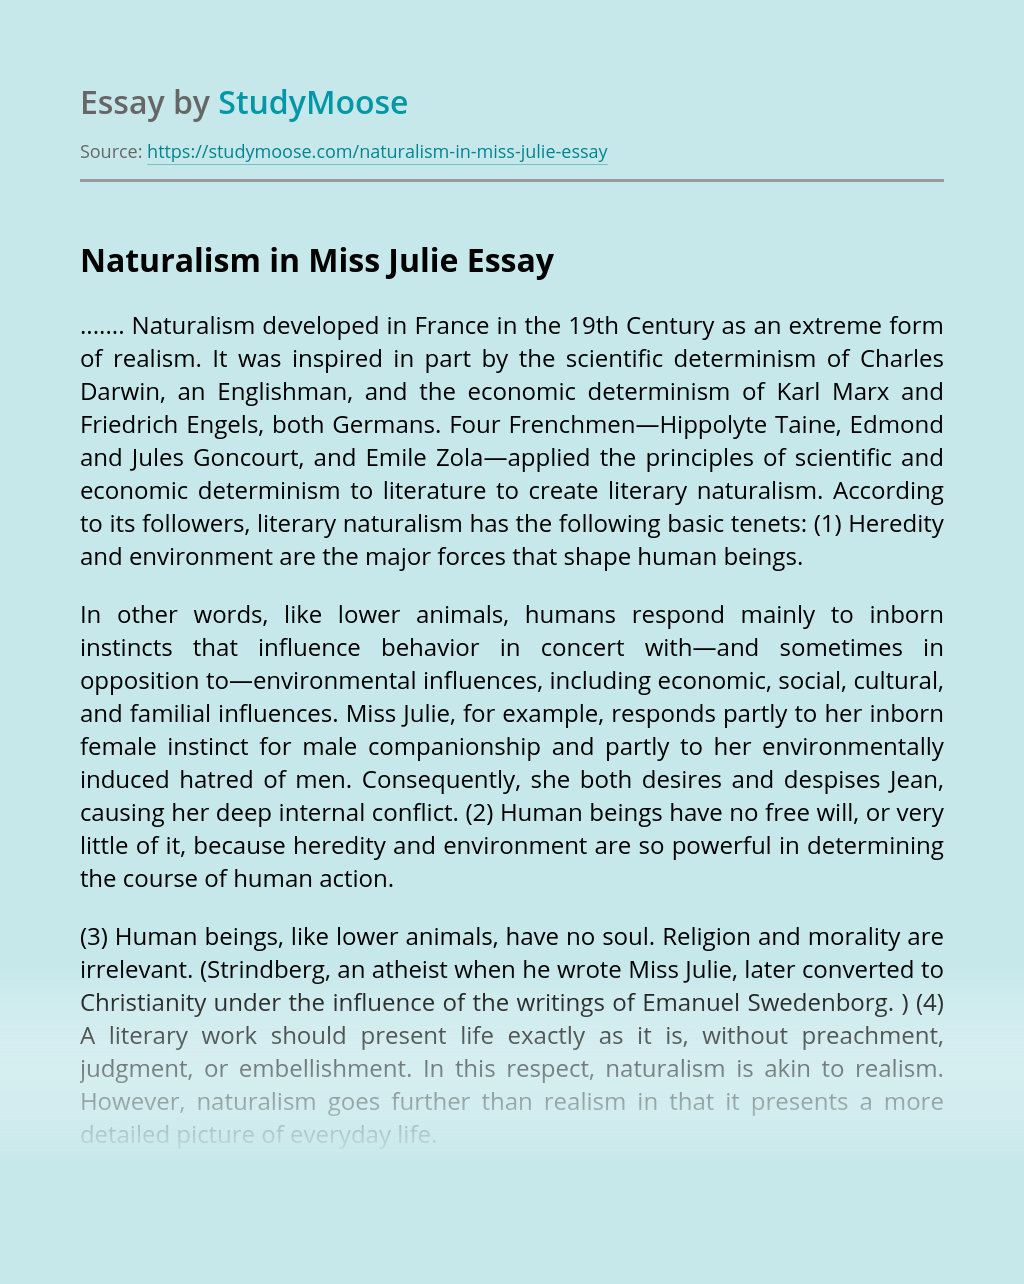 Naturalism in Miss Julie